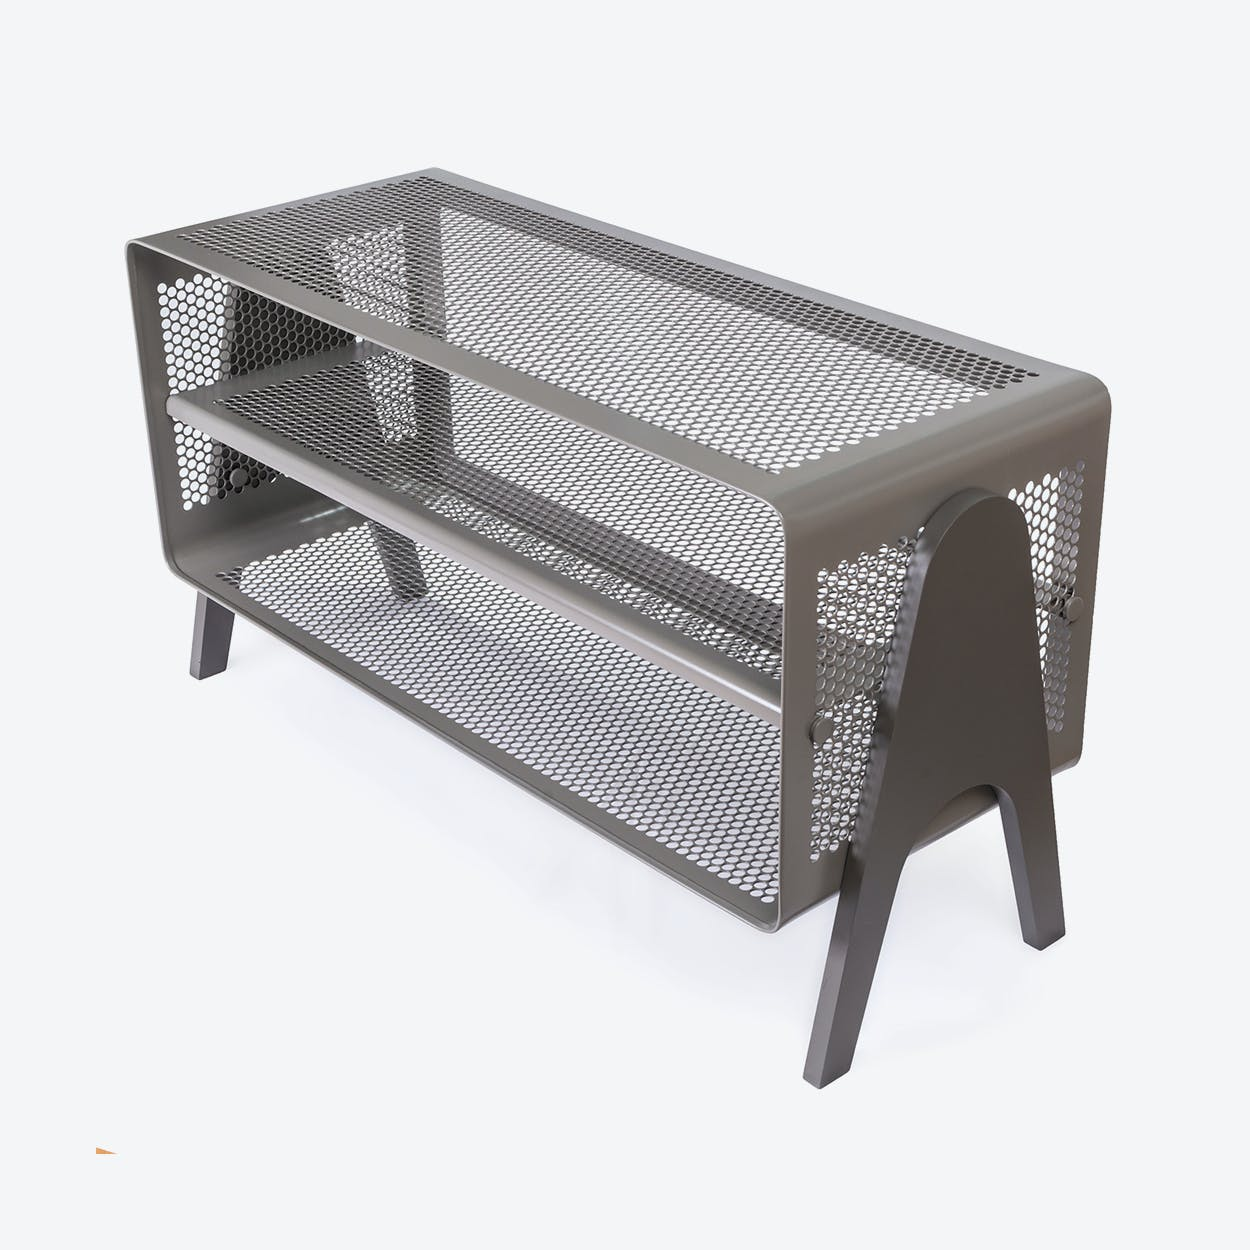 Big Floor Shoe Rack in Matte Grey/Taupe